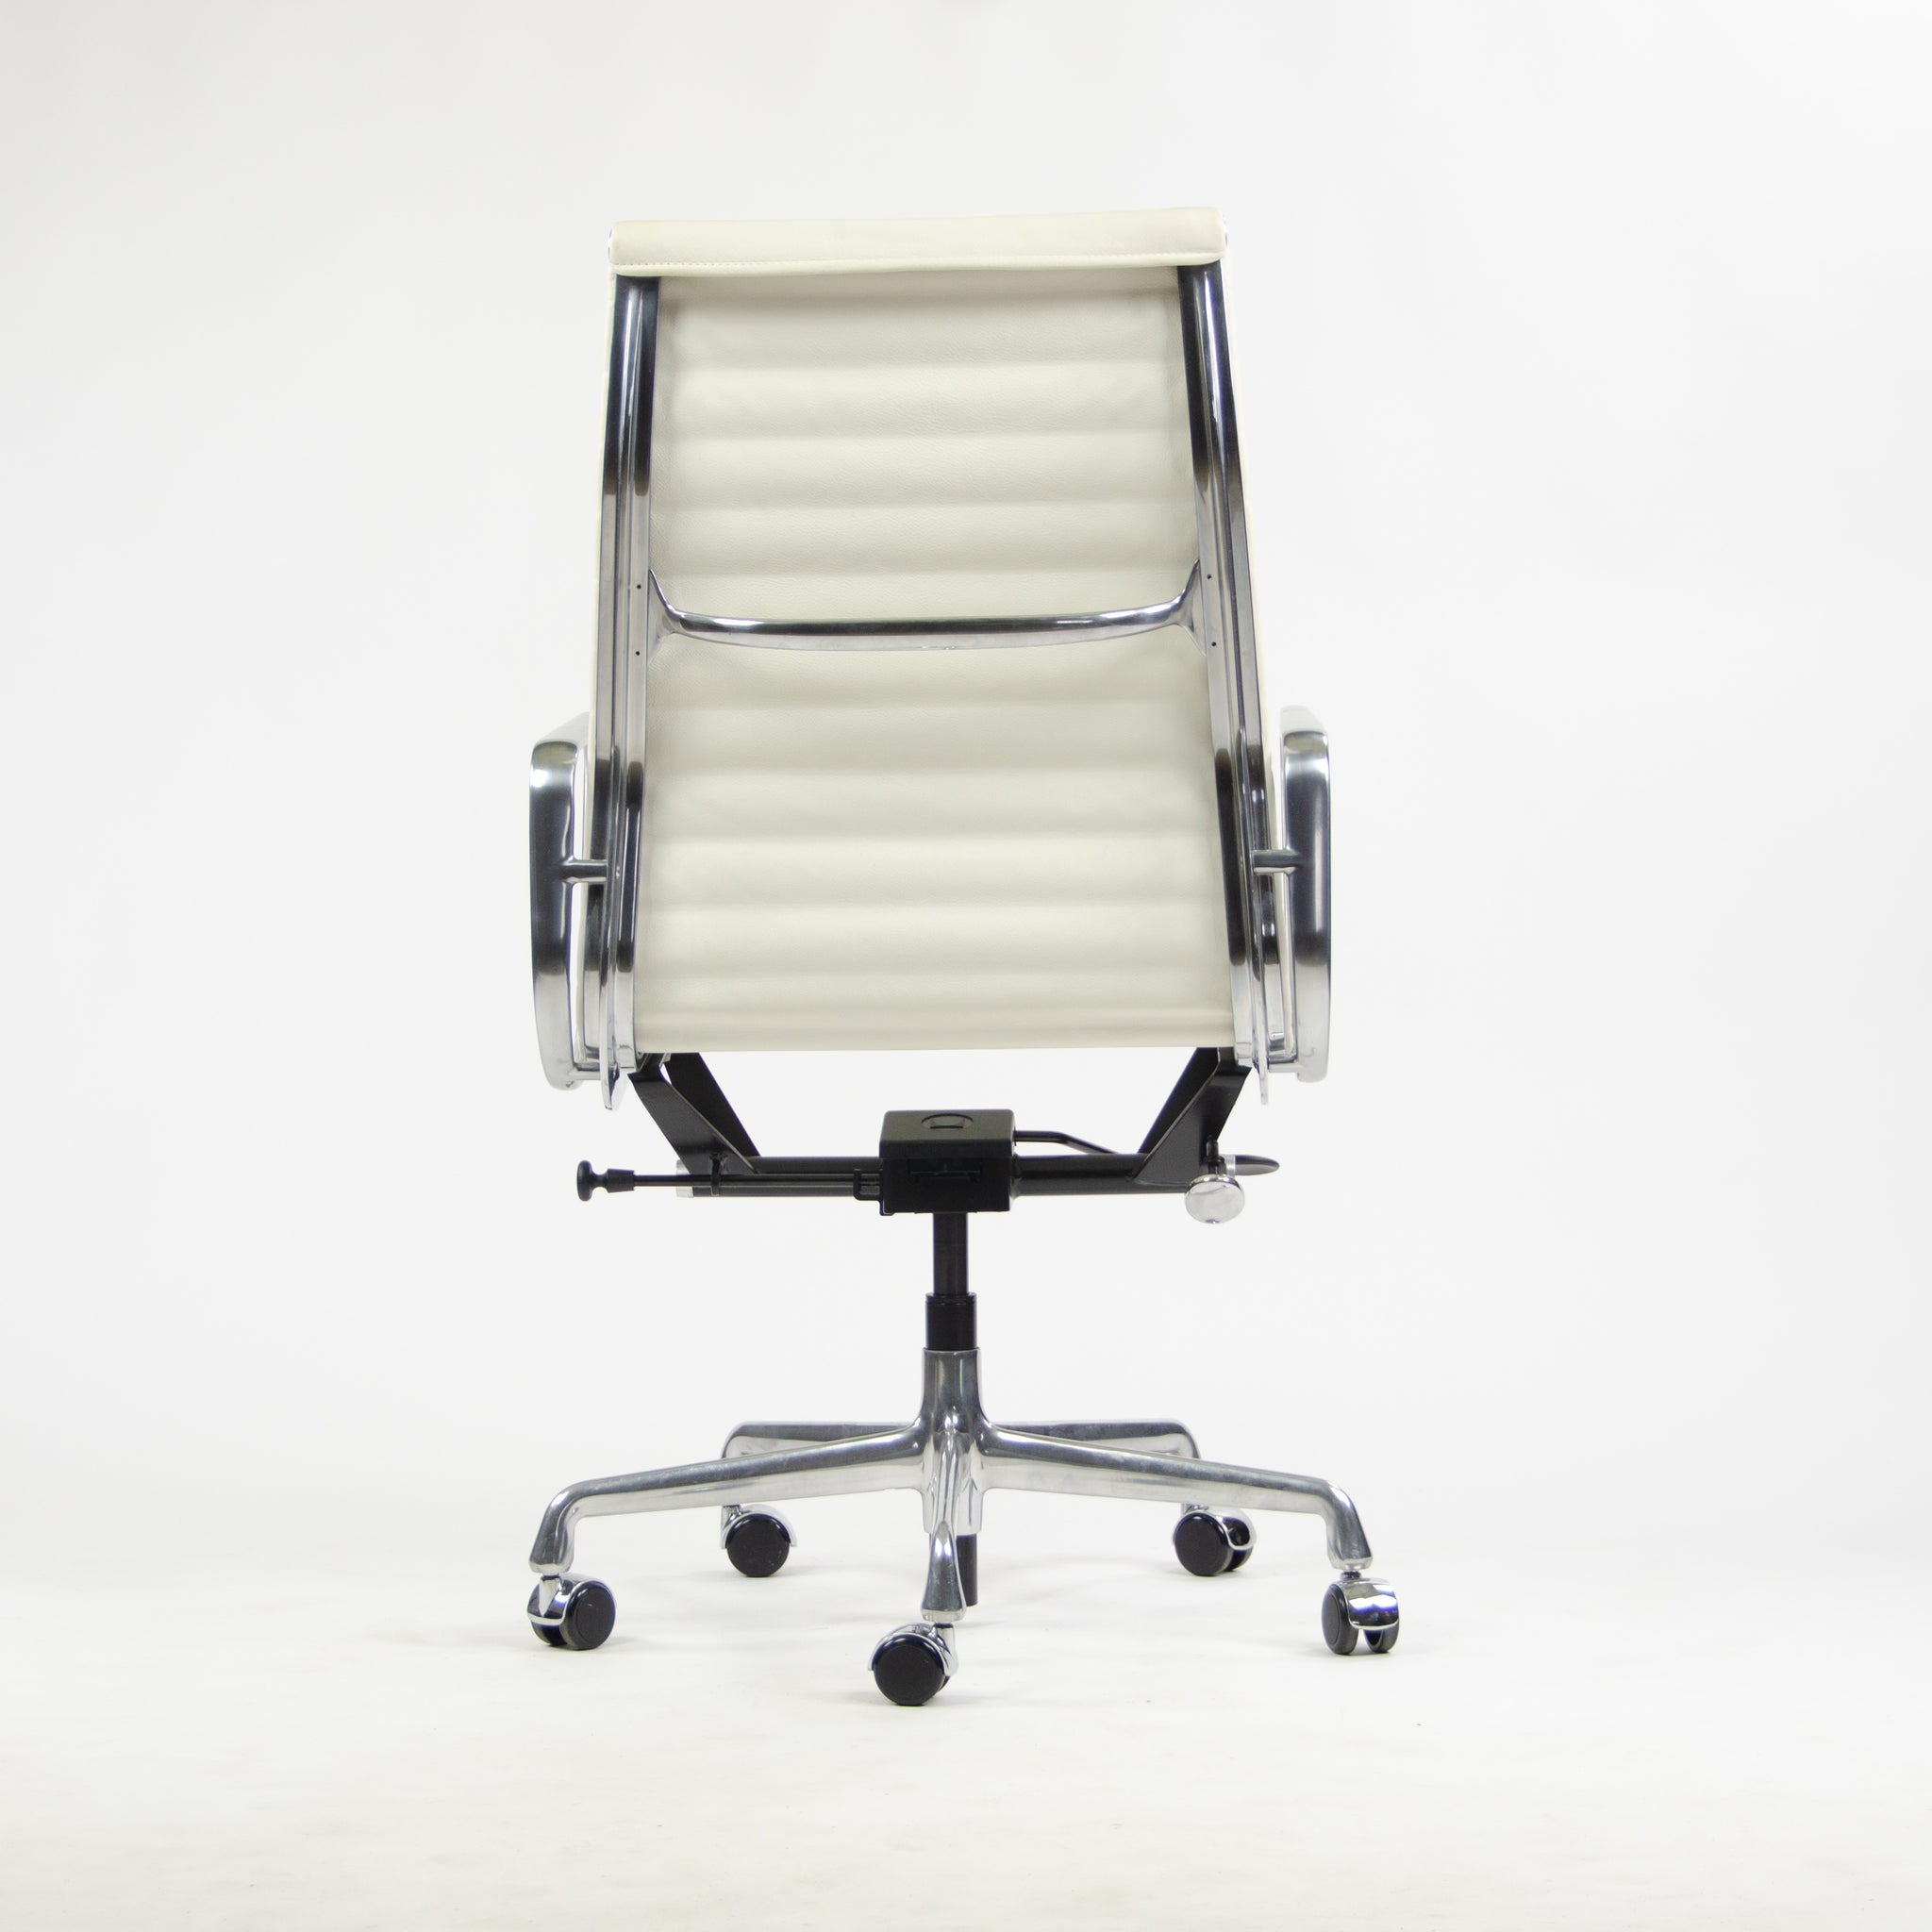 SOLD NEW 2013 Eames Herman Miller Leather High Aluminum Group Desk Chair White